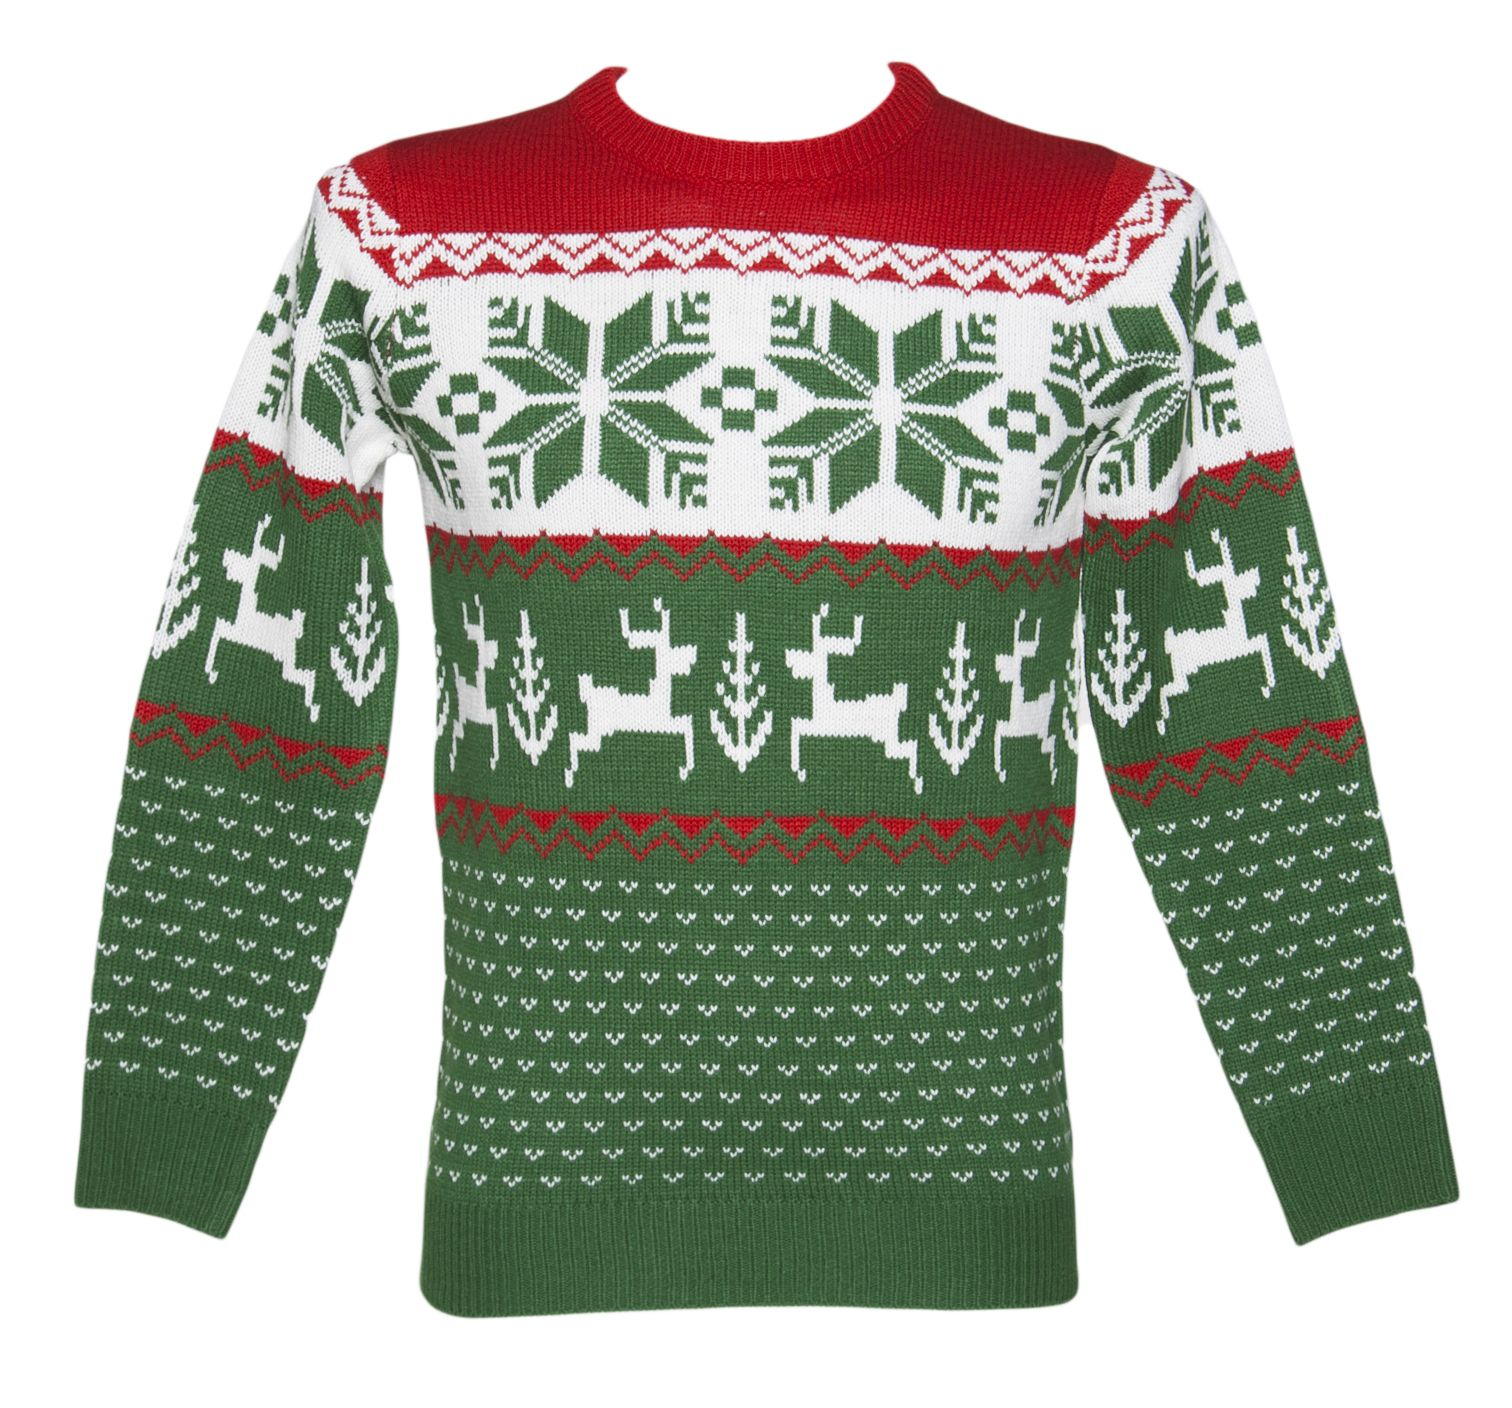 Dr Who Christmas Jumper